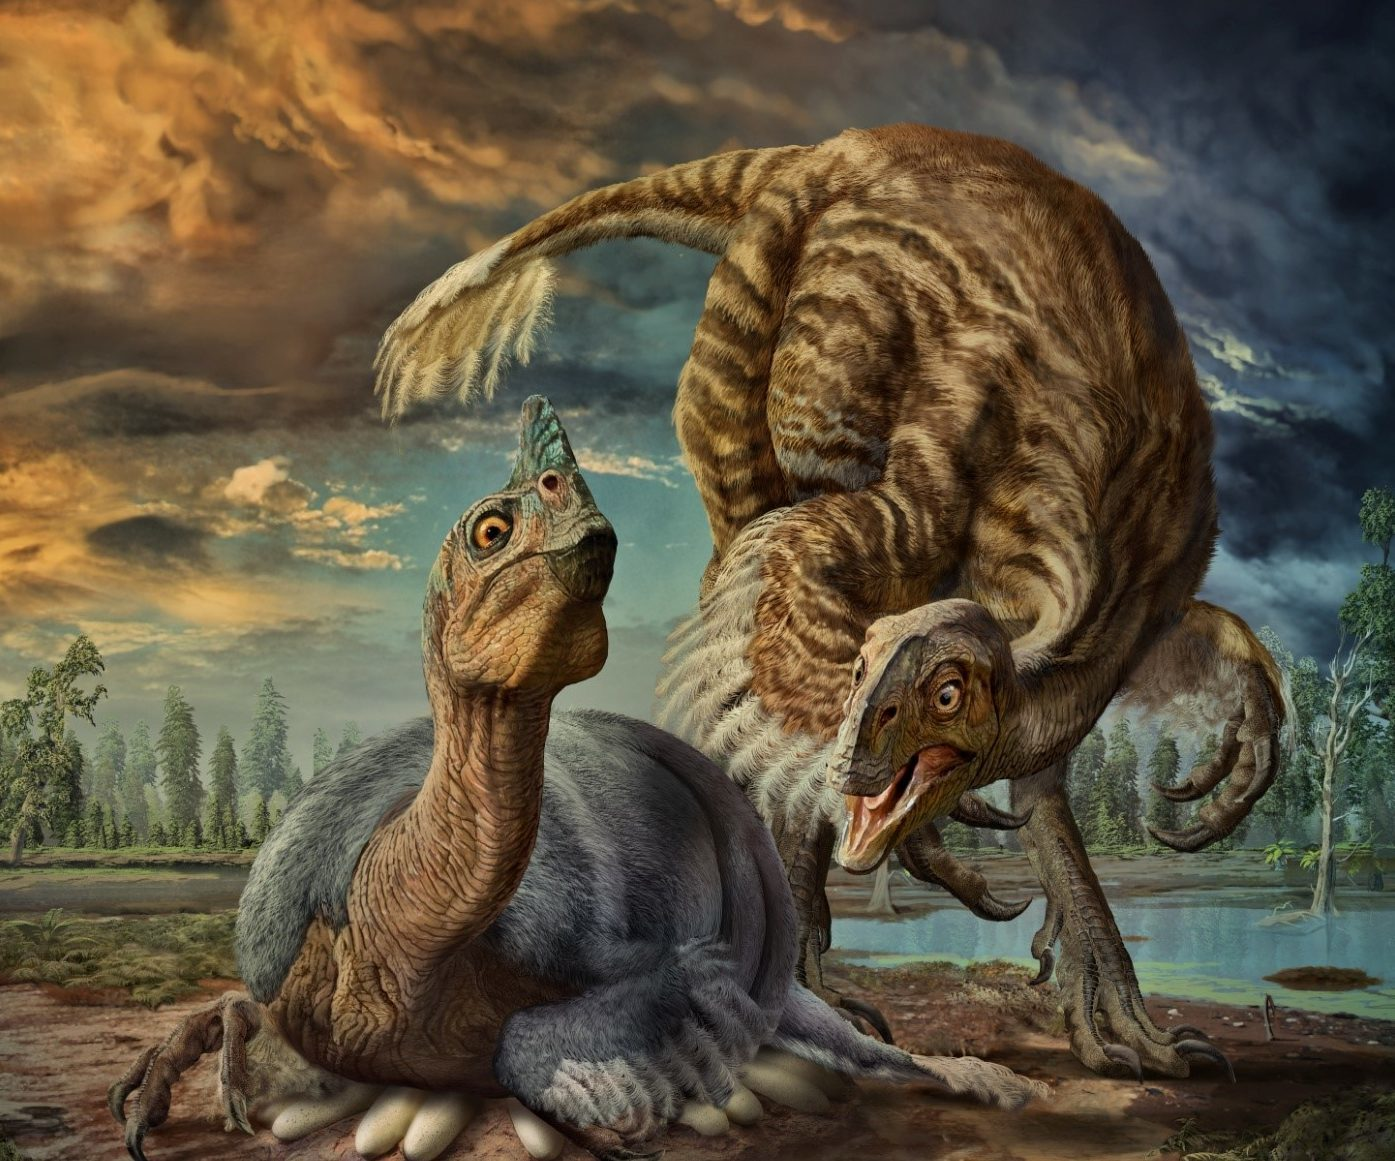 Illustration issued by the University of Calgary of an artist's impression of a nesting Beibeilong sinensis dinosaur incubating its eggs. (Zhao Chuang/PA Wire)